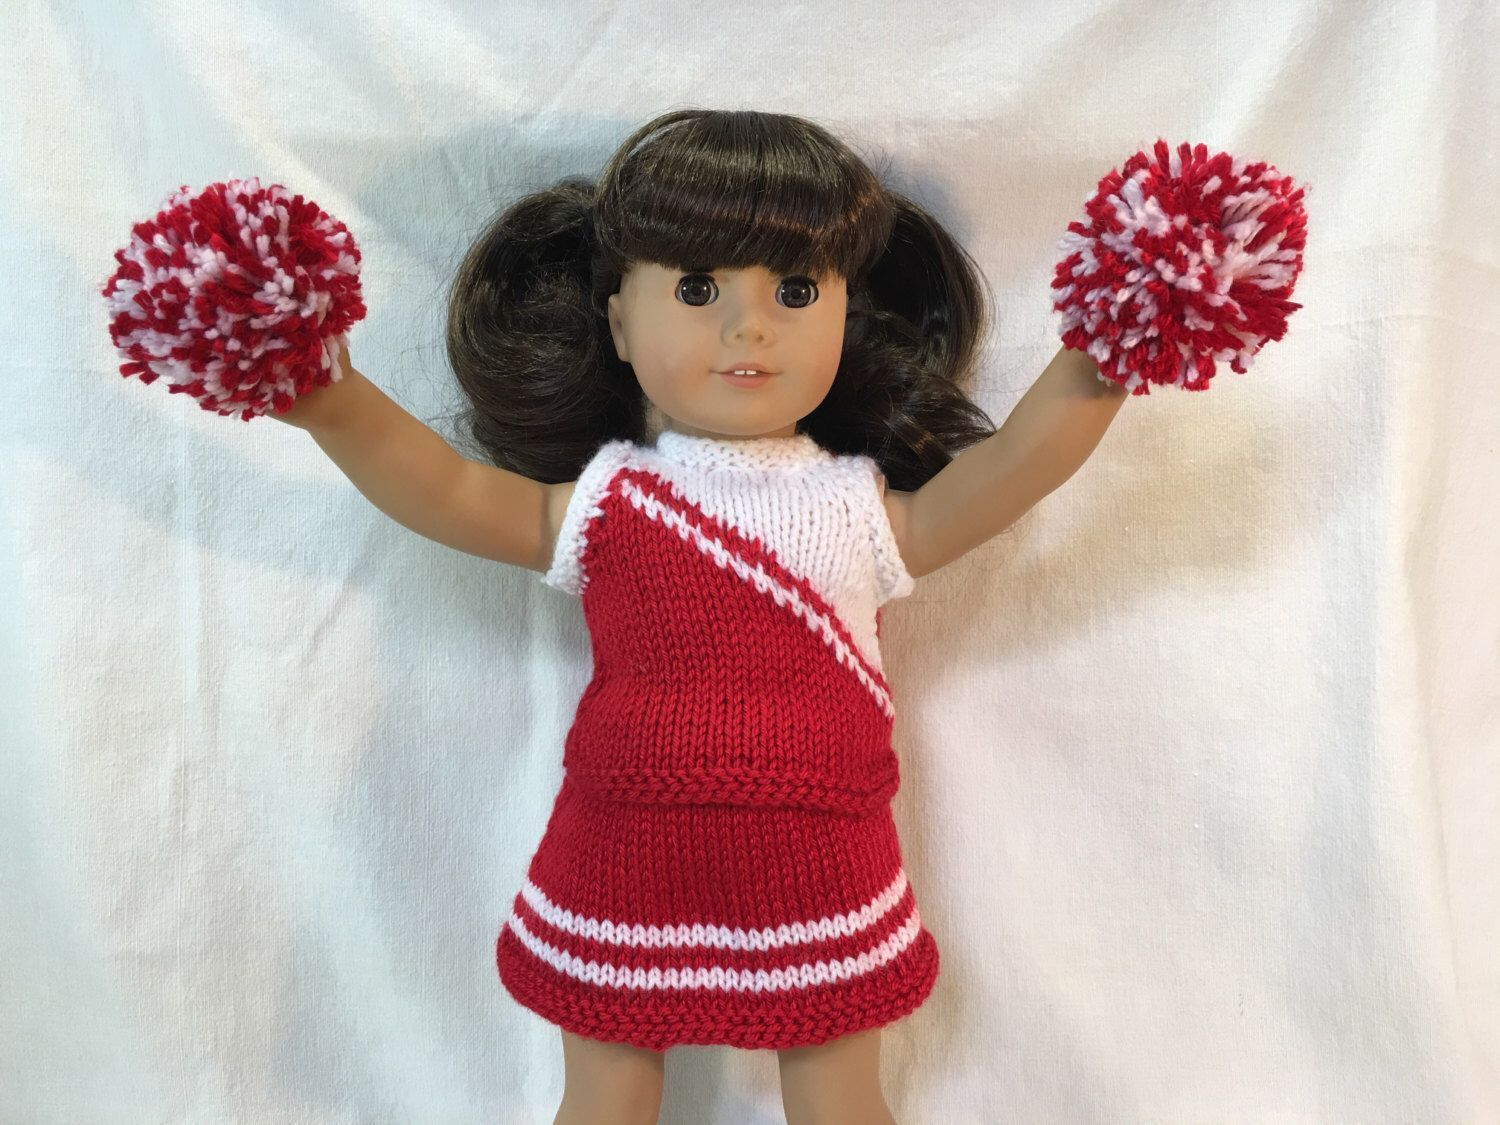 18 Inch Doll American Girl Cheerleading Outfit #18inchcheerleaderclothes Show your team or school pride with customizable colour options for cheerleading outfit with matching pom poms. Handmade to fit 18 inch dolls, similar to American Girl. Contact for customizing colours of outfit.  Please allow 2-3 weeks for completion. #18inchcheerleaderclothes 18 Inch Doll American Girl Cheerleading Outfit #18inchcheerleaderclothes Show your team or school pride with customizable colour options for cheerlea #18inchcheerleaderclothes